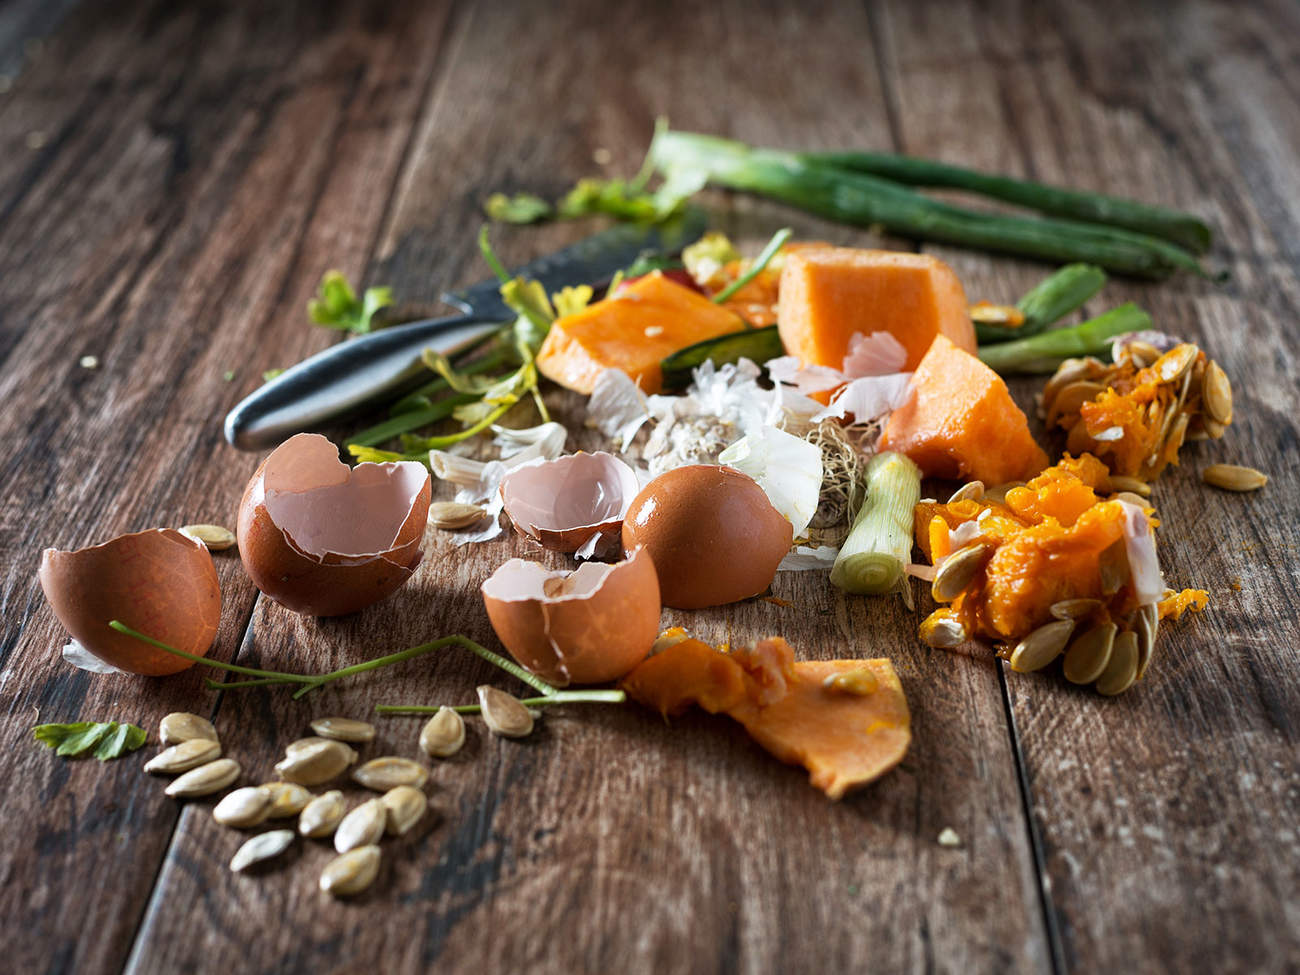 more food waste new major and classes offered